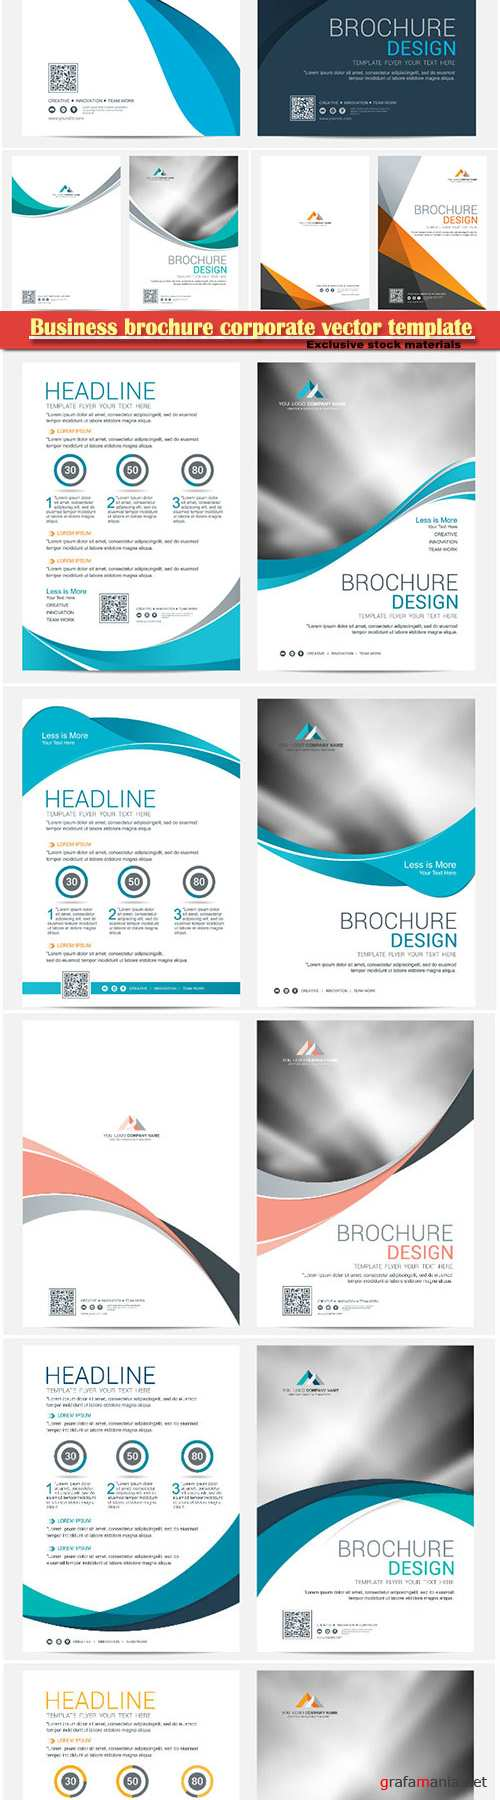 Business brochure corporate vector template, magazine flyer mockup